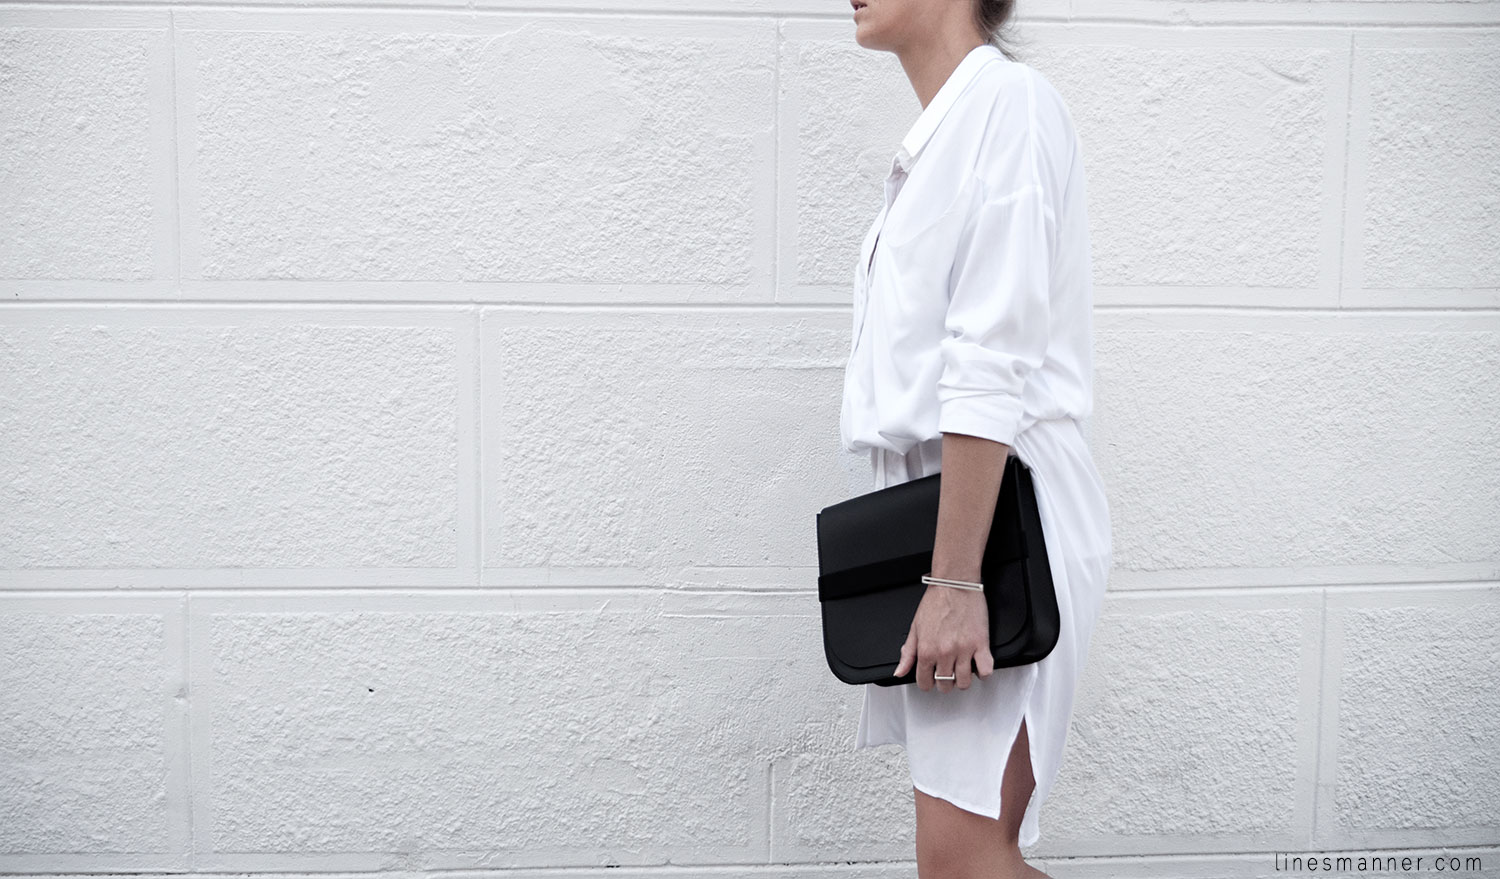 Lines-Manner-Whiteout-Fashion-Minimal-Clean-Fresh-Brigthly-All_White-Monochrome-Immaculate-Trend-Style-Sleek-Slouchy-Details-White_Shirt-Transeasonal-Dressing-Outfit-15